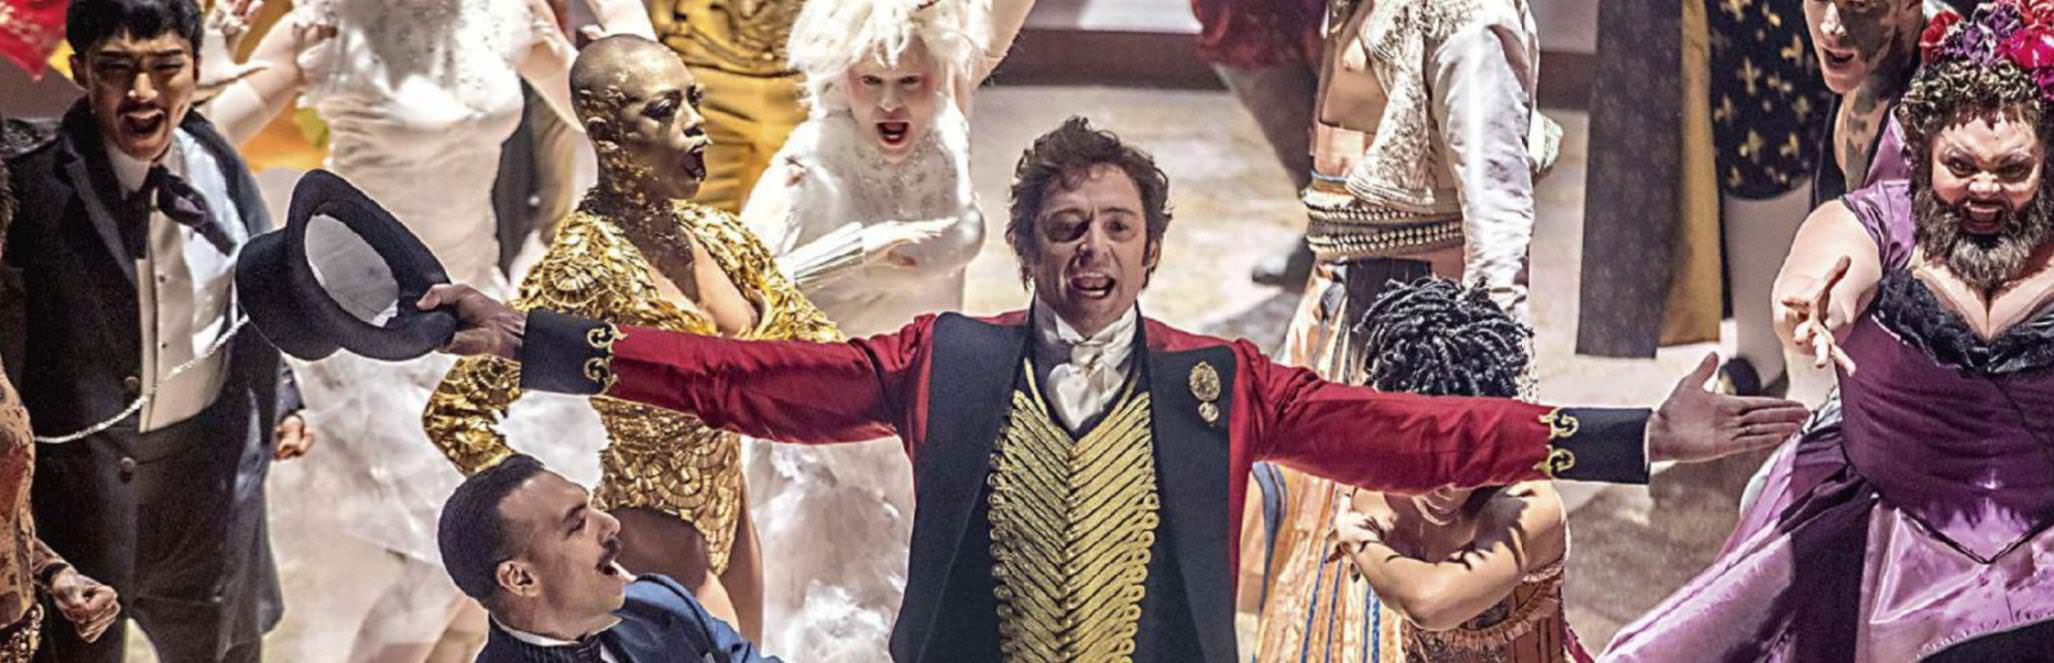 the greatest showman - photo #24